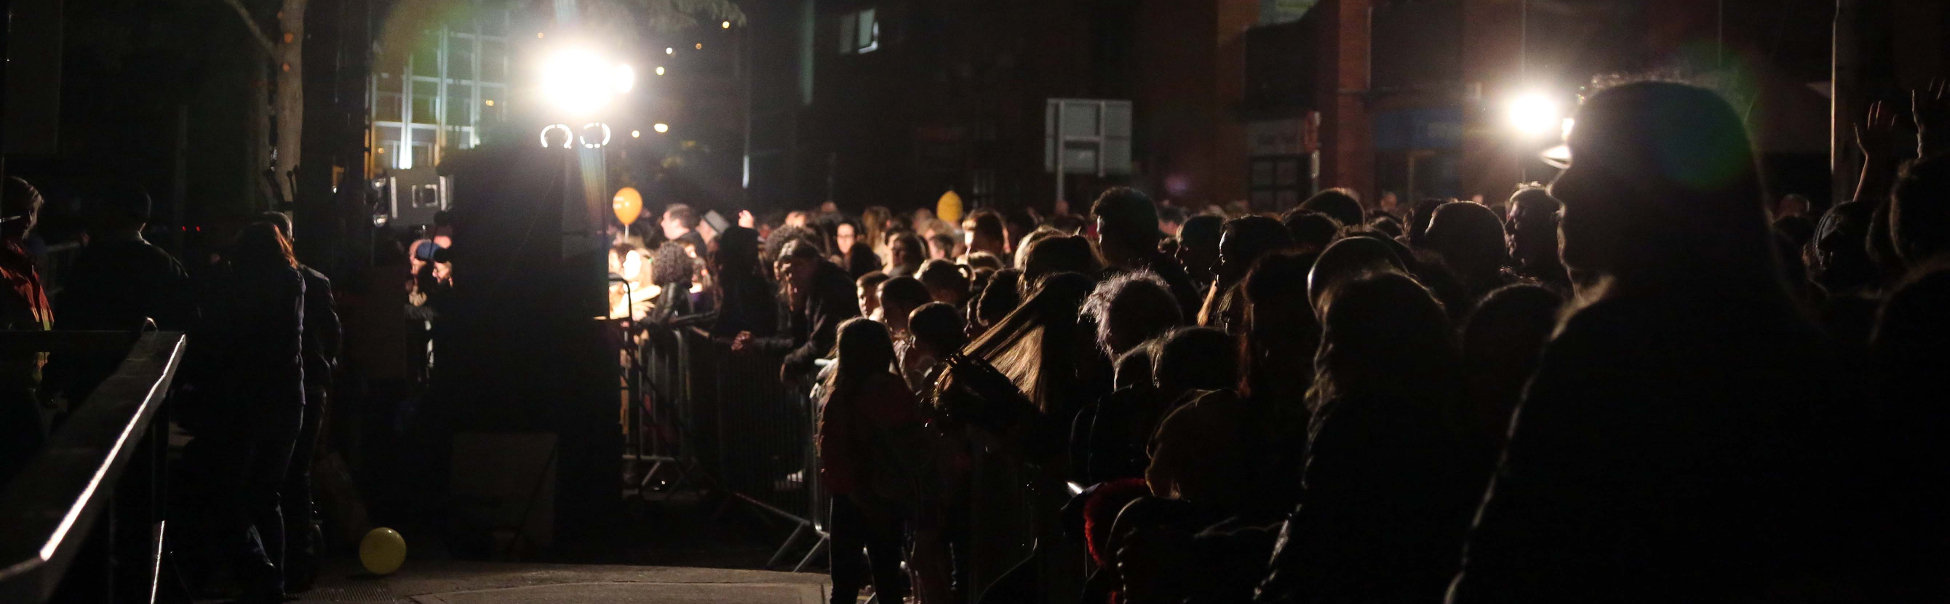 Audiences on the banks of the River Lee for Cork Ignite, Culture Night 2015